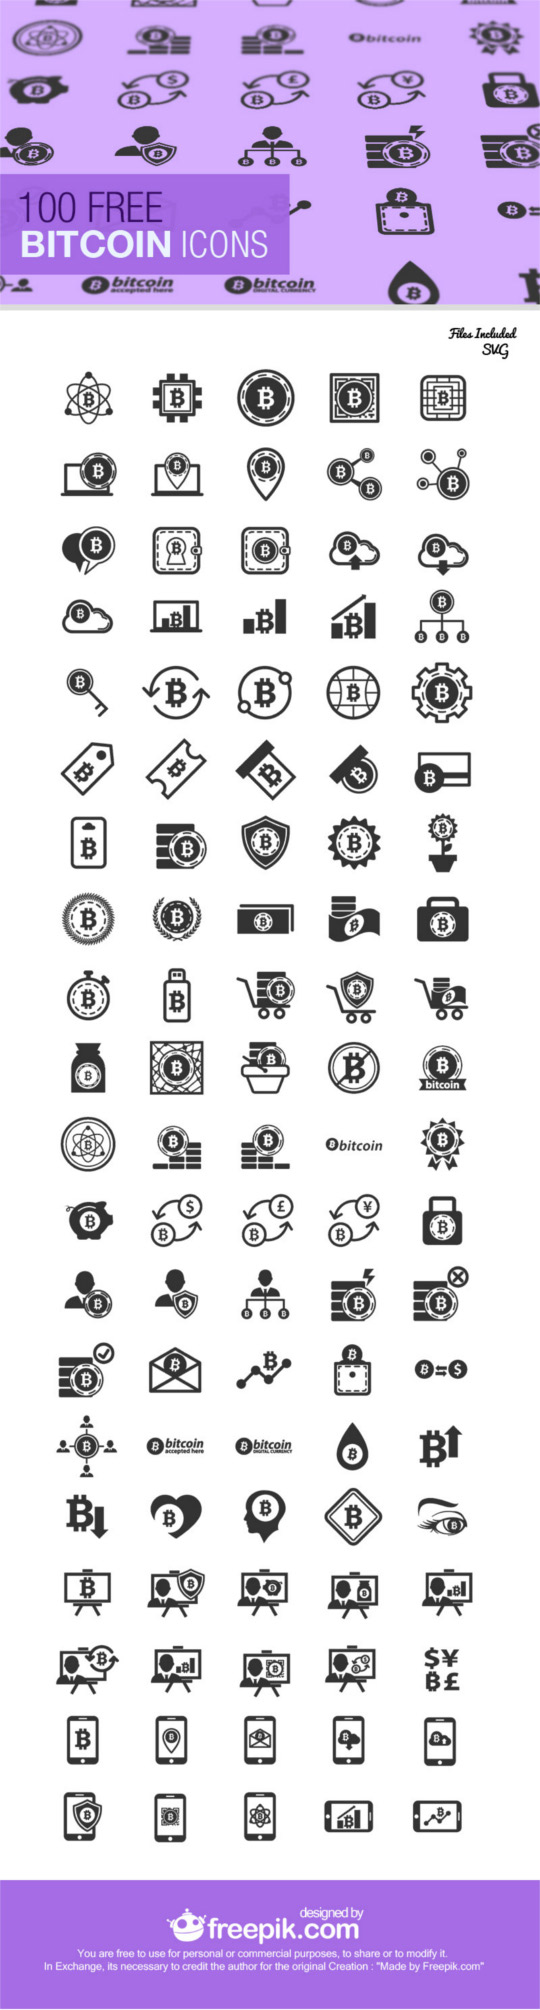 Free Bitcoin Graphic Pack Download